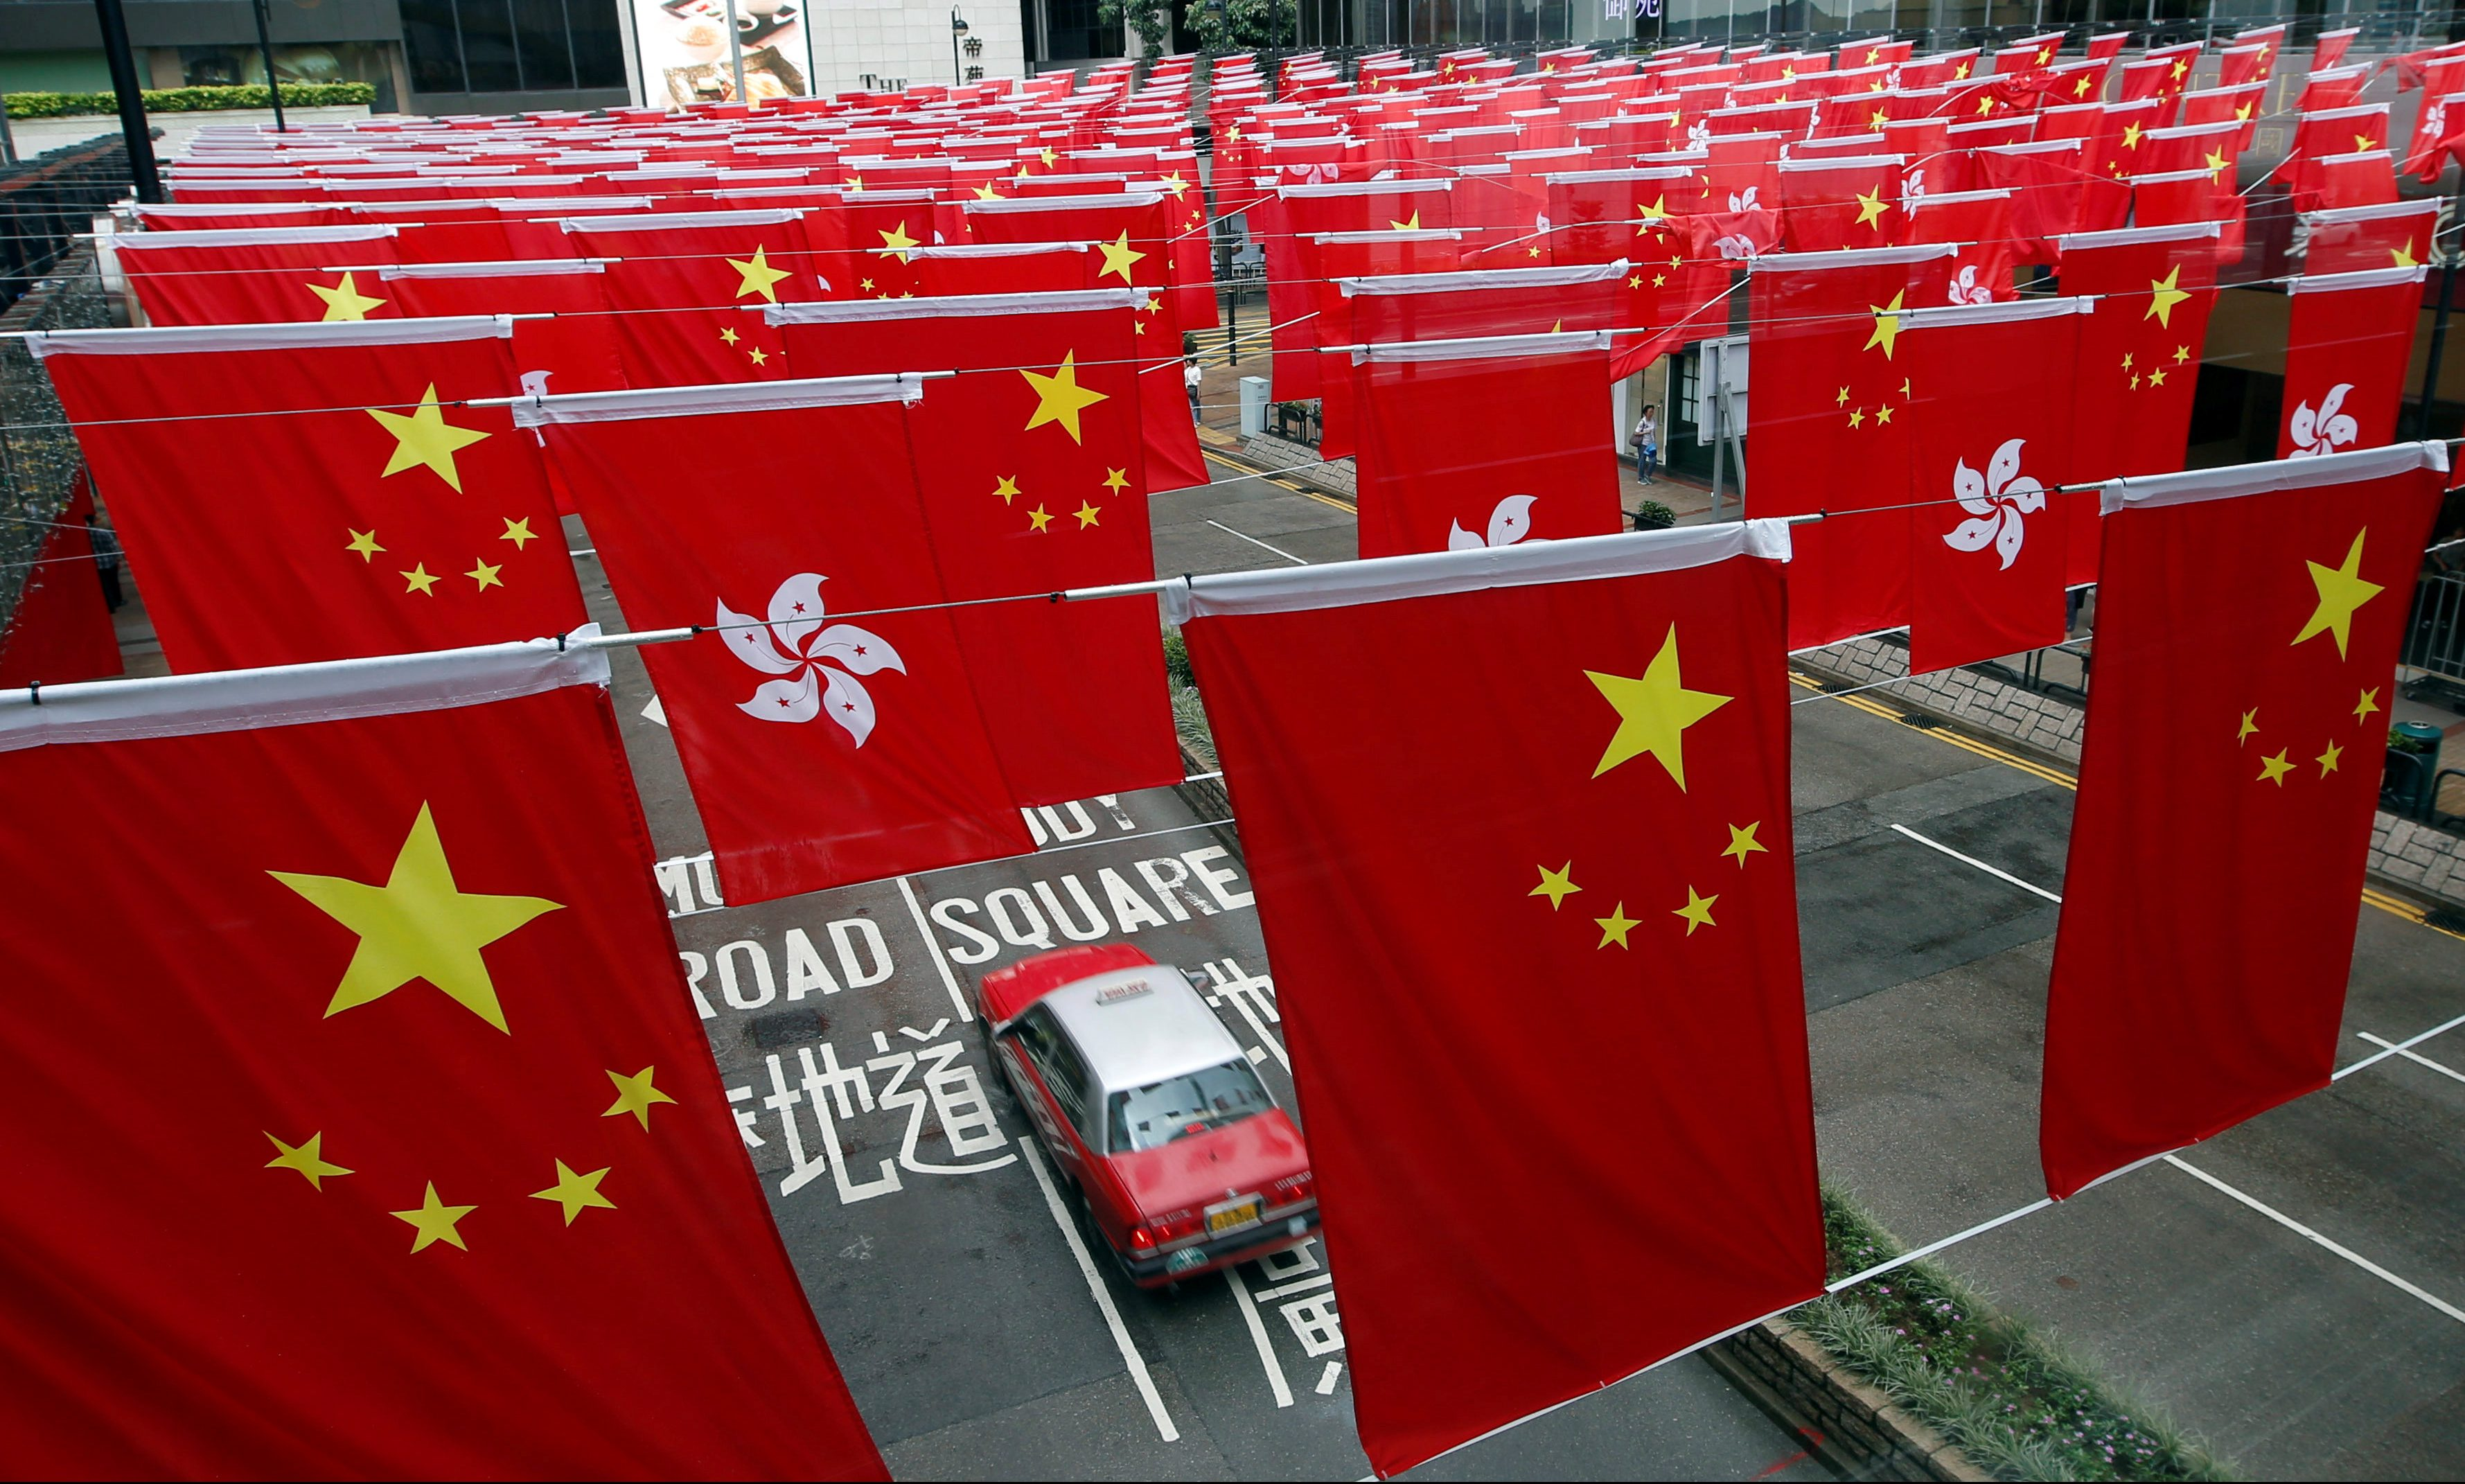 Chinese and Hong Kong flags are seen after celebrations commemorating the 20th anniversary of Hong Kong's handover to Chinese sovereignty from British rule, in Hong Kong